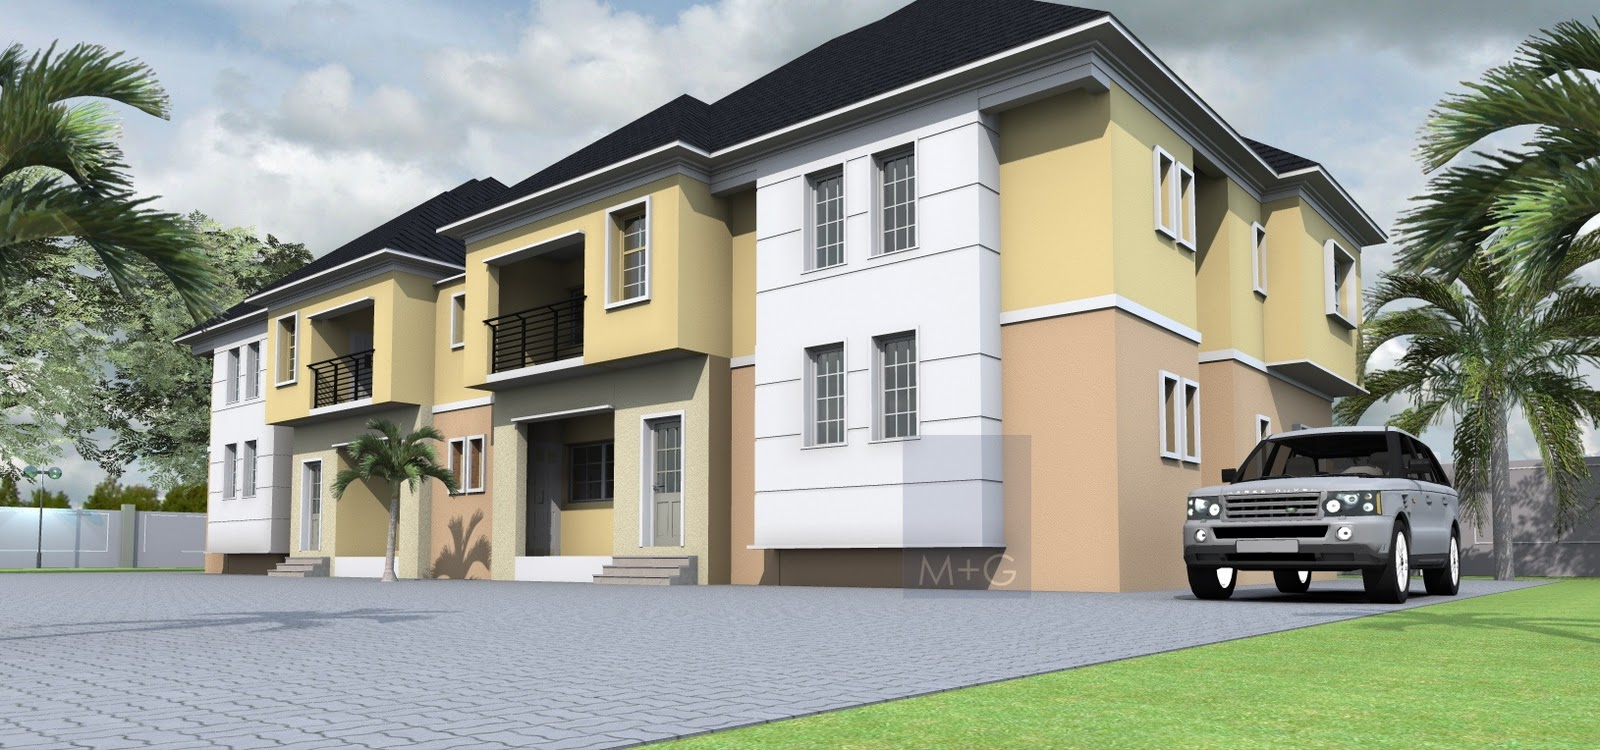 Contemporary Nigerian Residential Architecture: 3 bedrooms ...